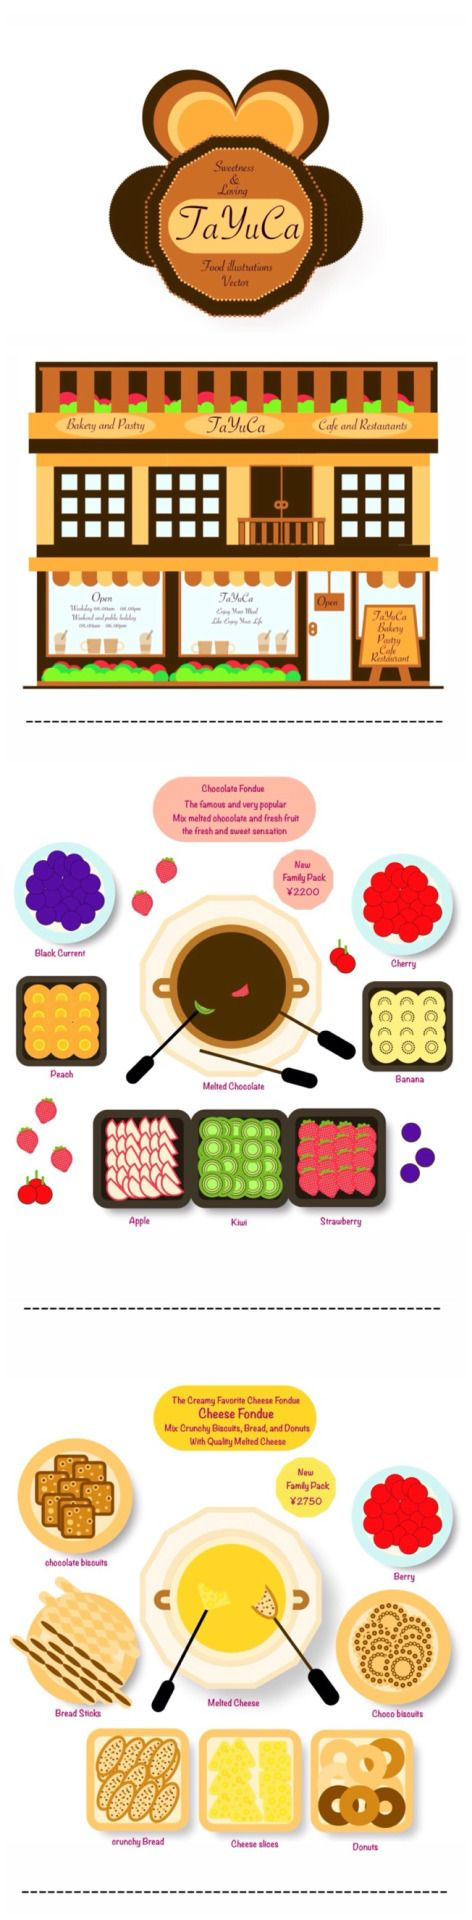 TaYuCa Vector Food Illustrations — The most favorite and famous fondue ✌️I get...